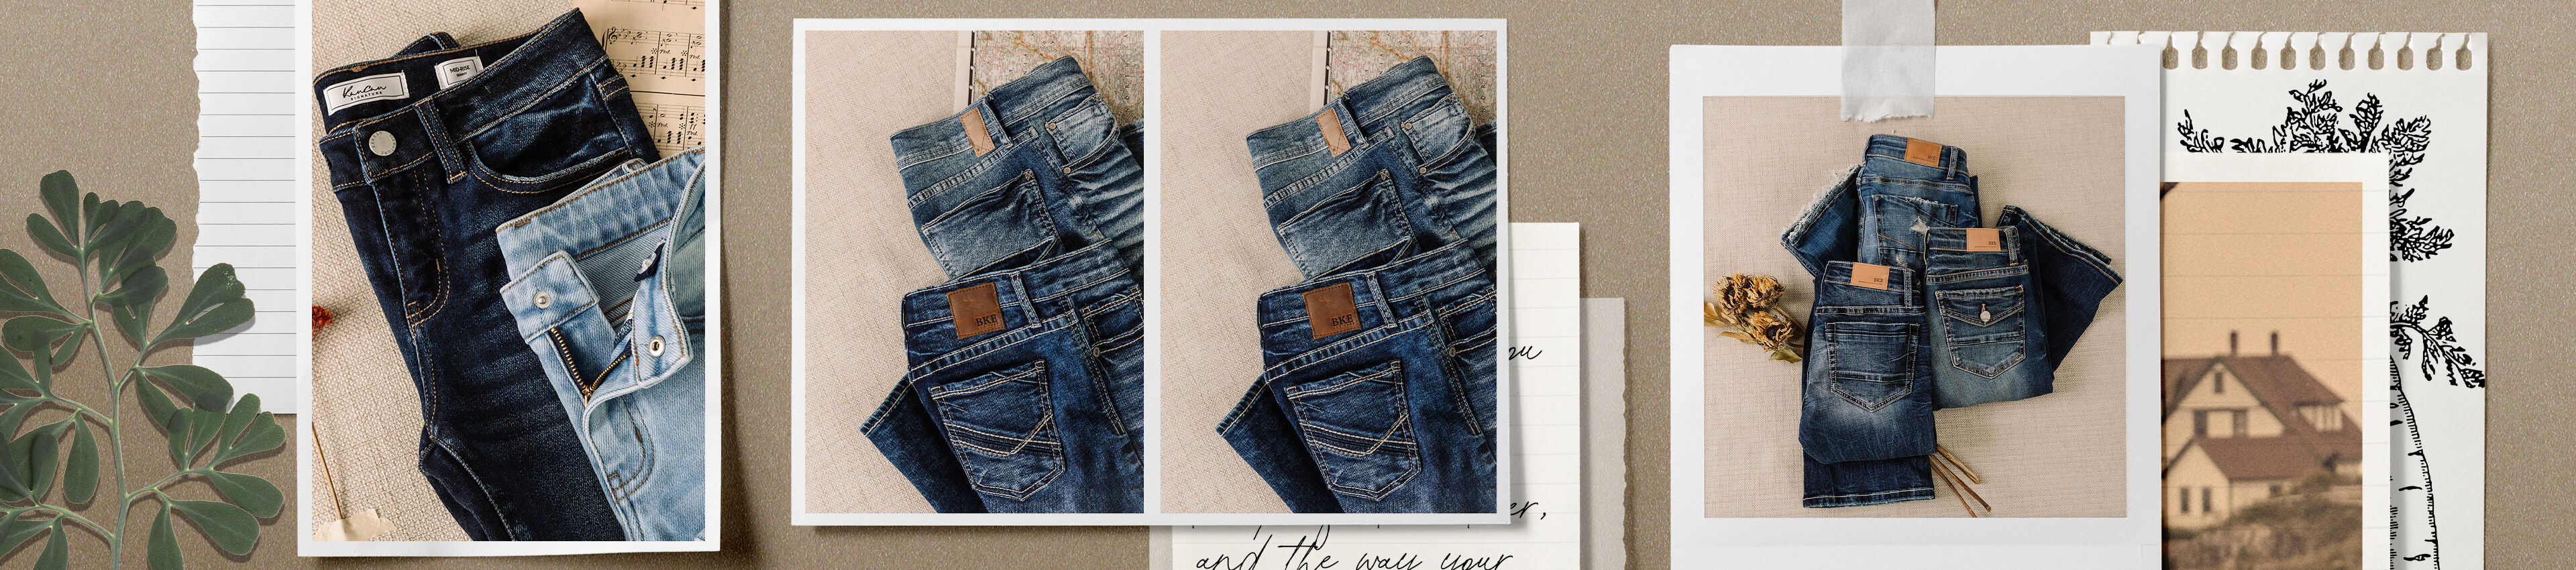 A pair of dark washed denim and a pair of light washed denim laying on the floor.